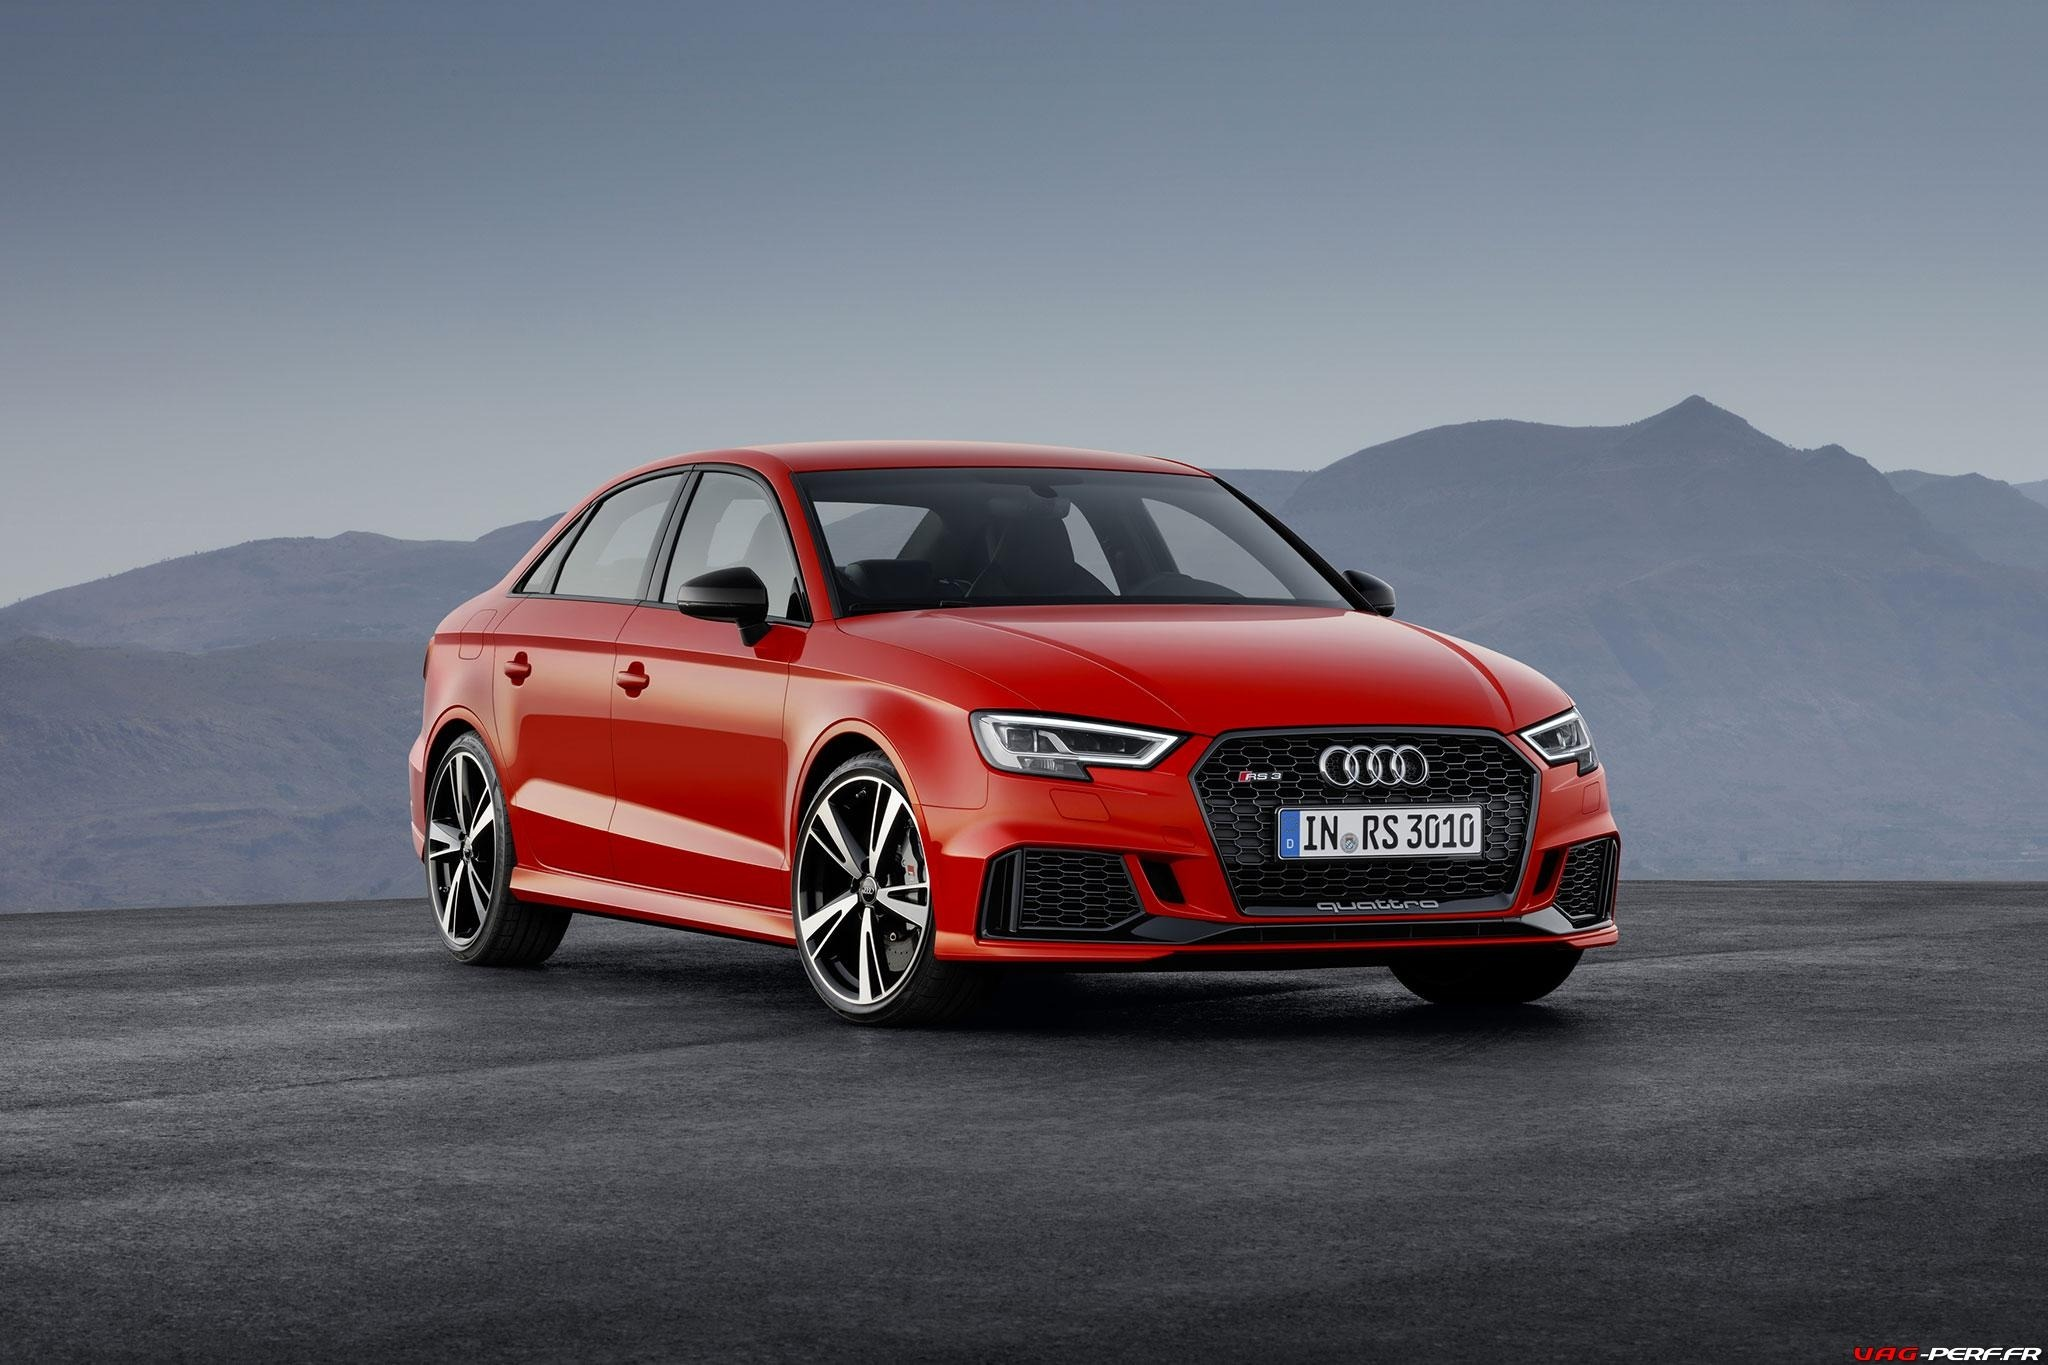 2016_Audi-RS3-Sedan-Officiel_07